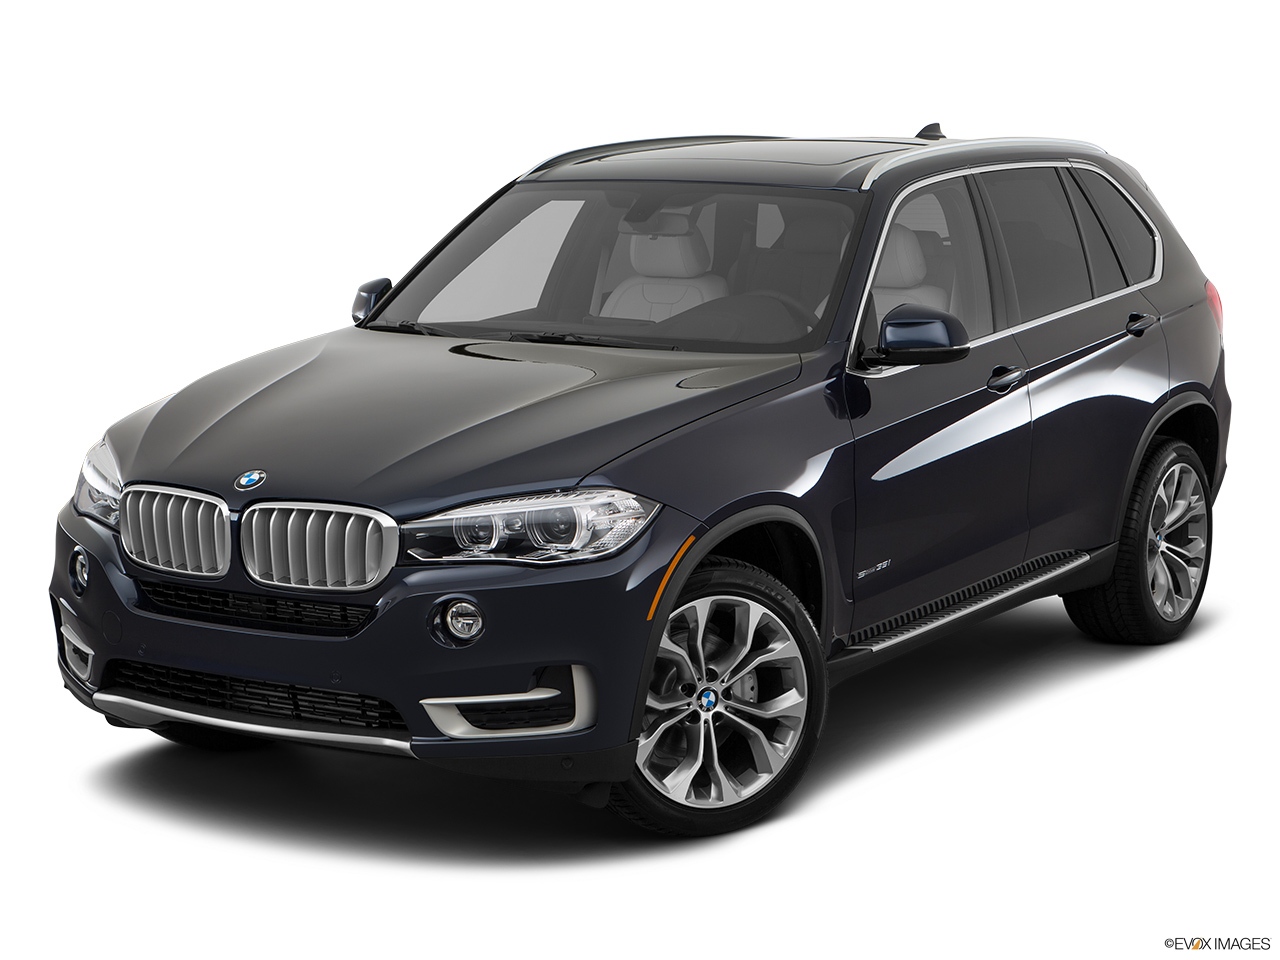 2017 Bmw X5 Prices In Egypt Gulf Specs Amp Reviews For